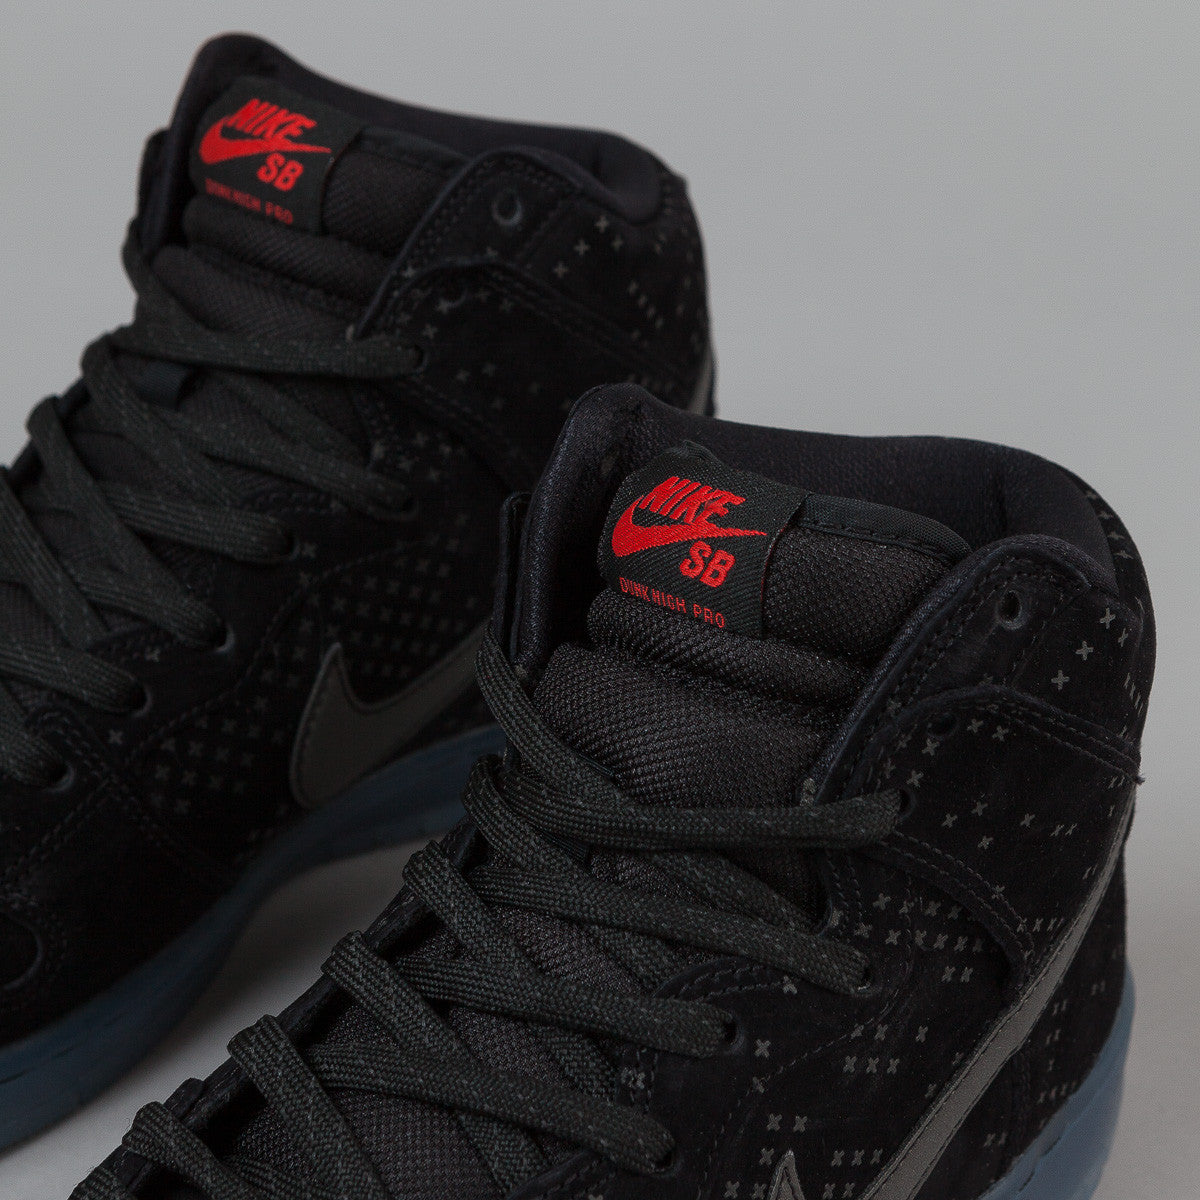 Nike SB Dunk High Premium Flash - Black / Black - Clear